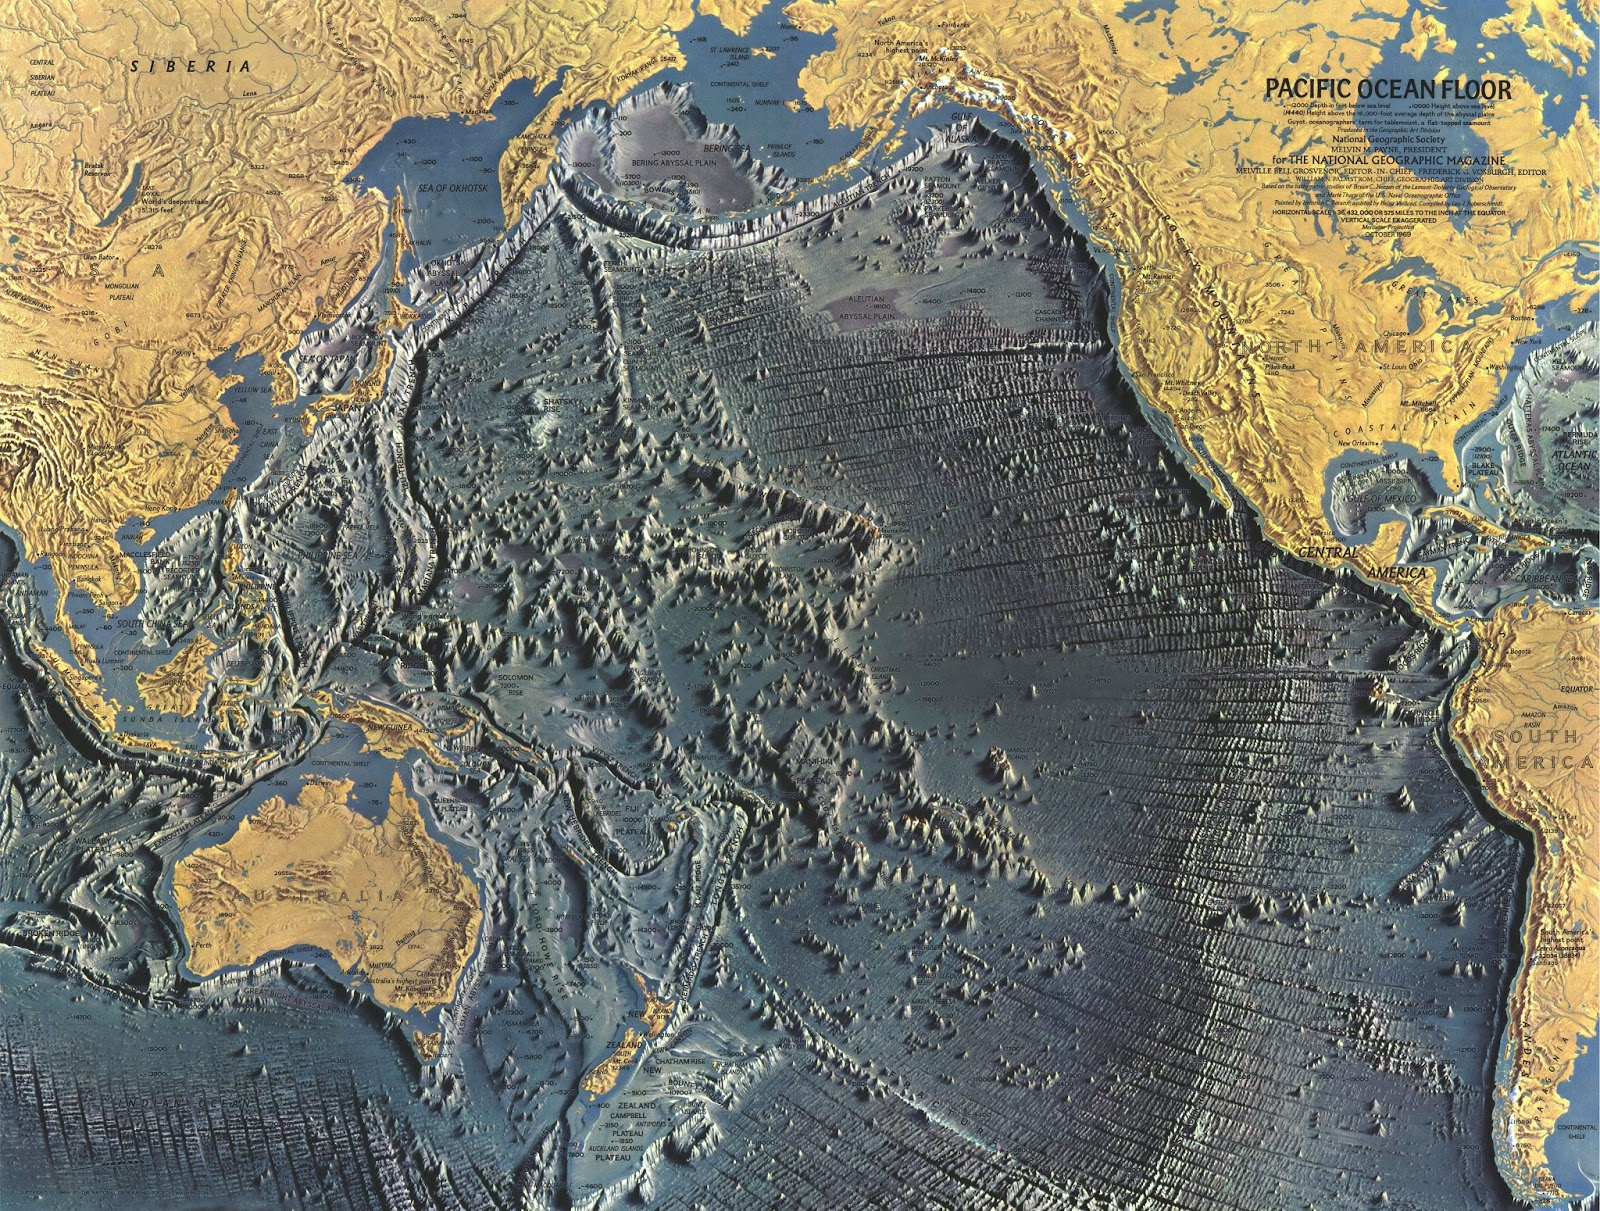 A detailed map of the Pacific ocean floor